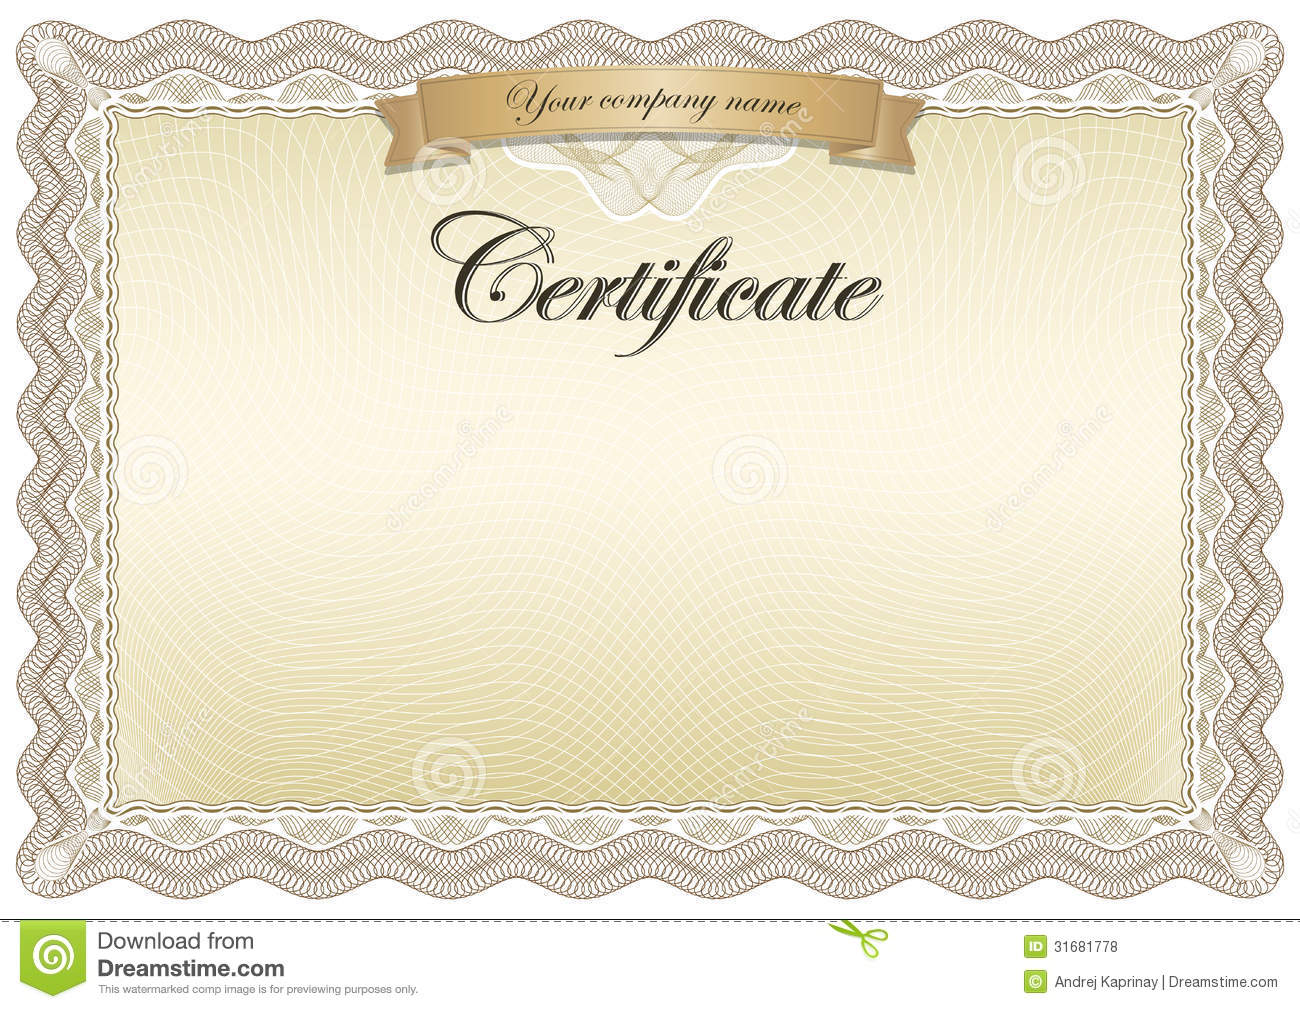 Certificate Brown Royalty Free Stock Photos - Image: 31681778